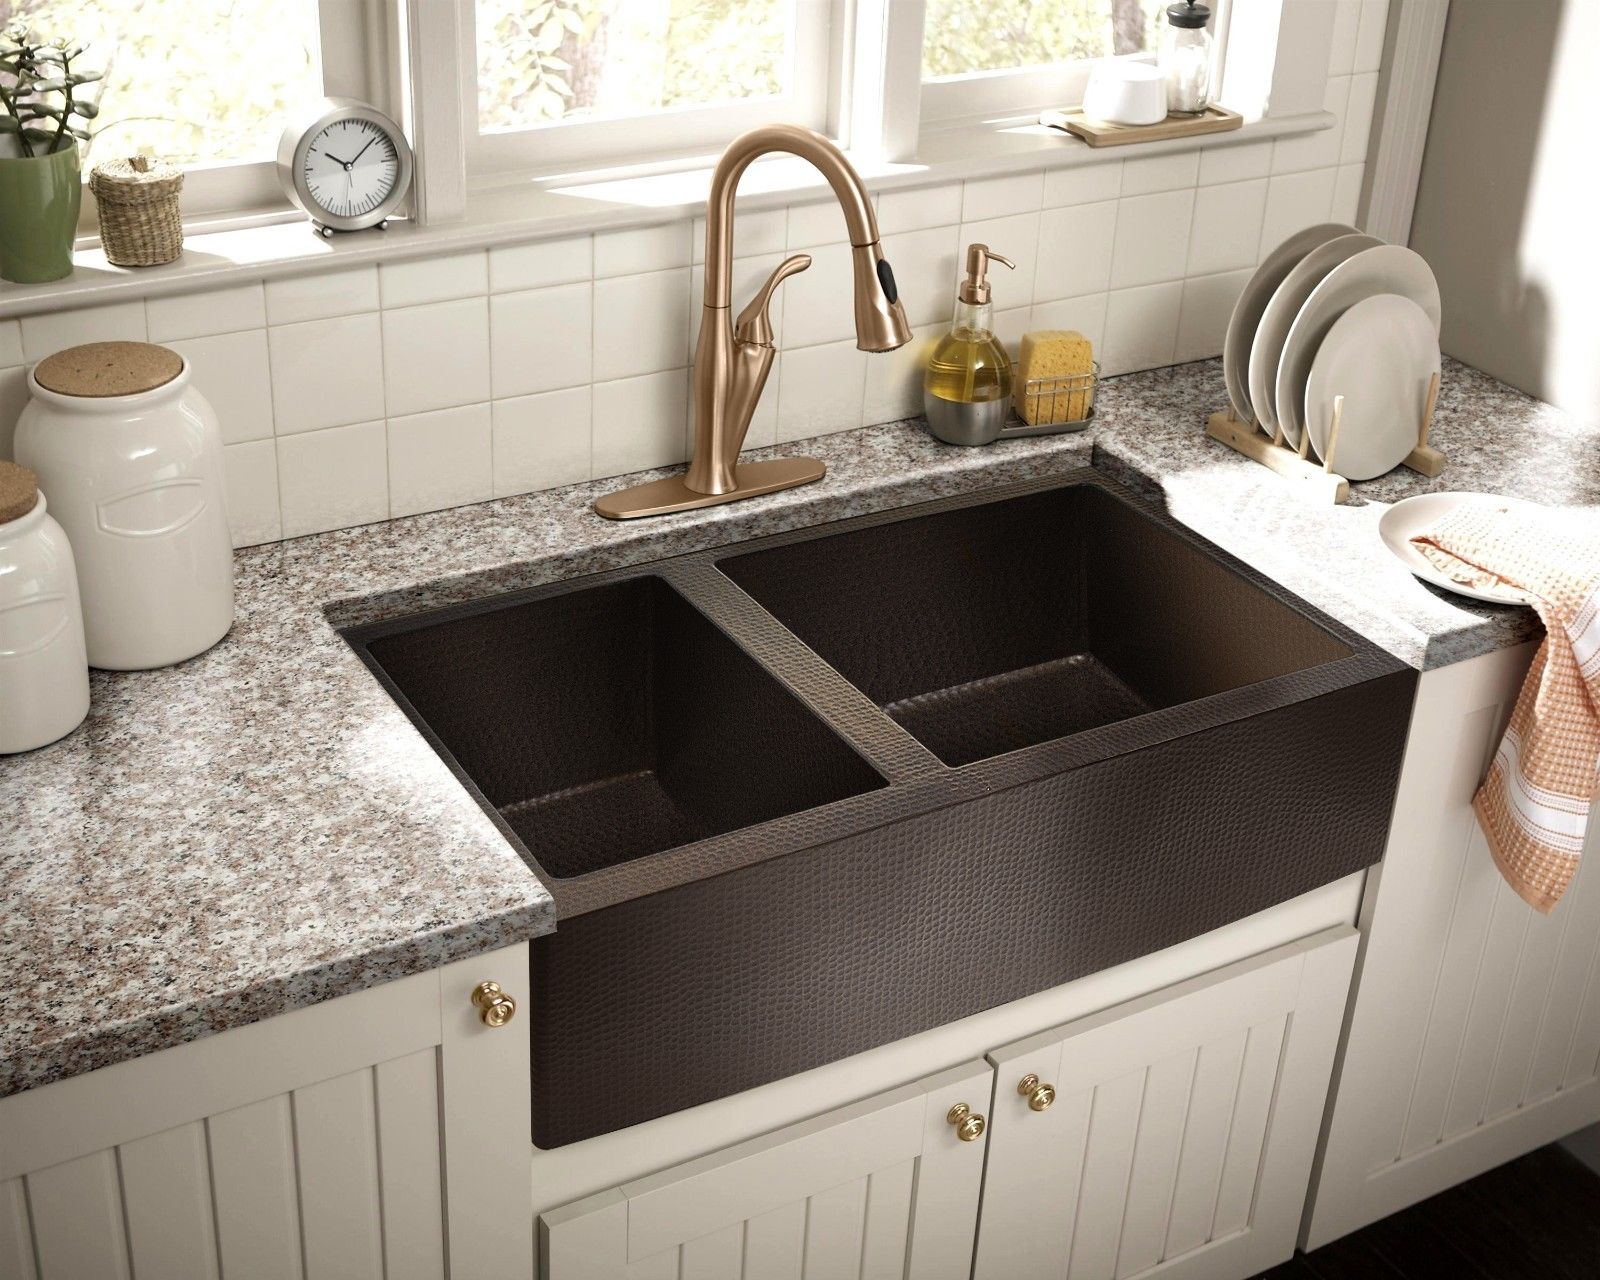 Picture of: Hammered Copper Apron Farmhouse Kitchen Sink 33 X22 60 40 No Custom Duties 813584013676 Ebay